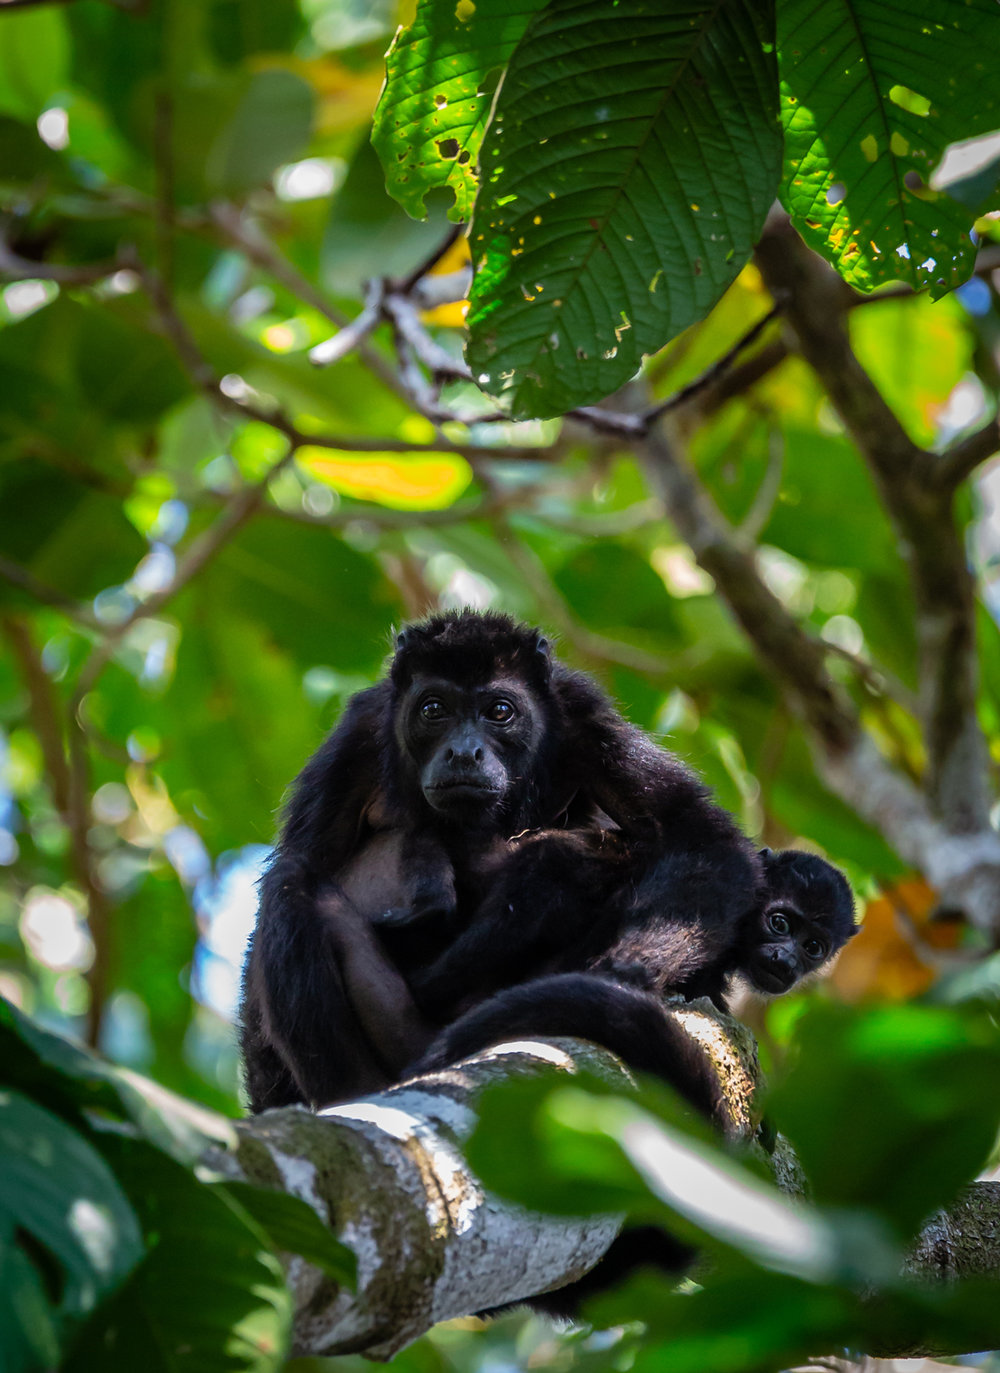 Female Mantled Howler Monkey with Offspring - Taken in Rio Pro, Costa Rica. Photo by Ben Blankenship ©2019